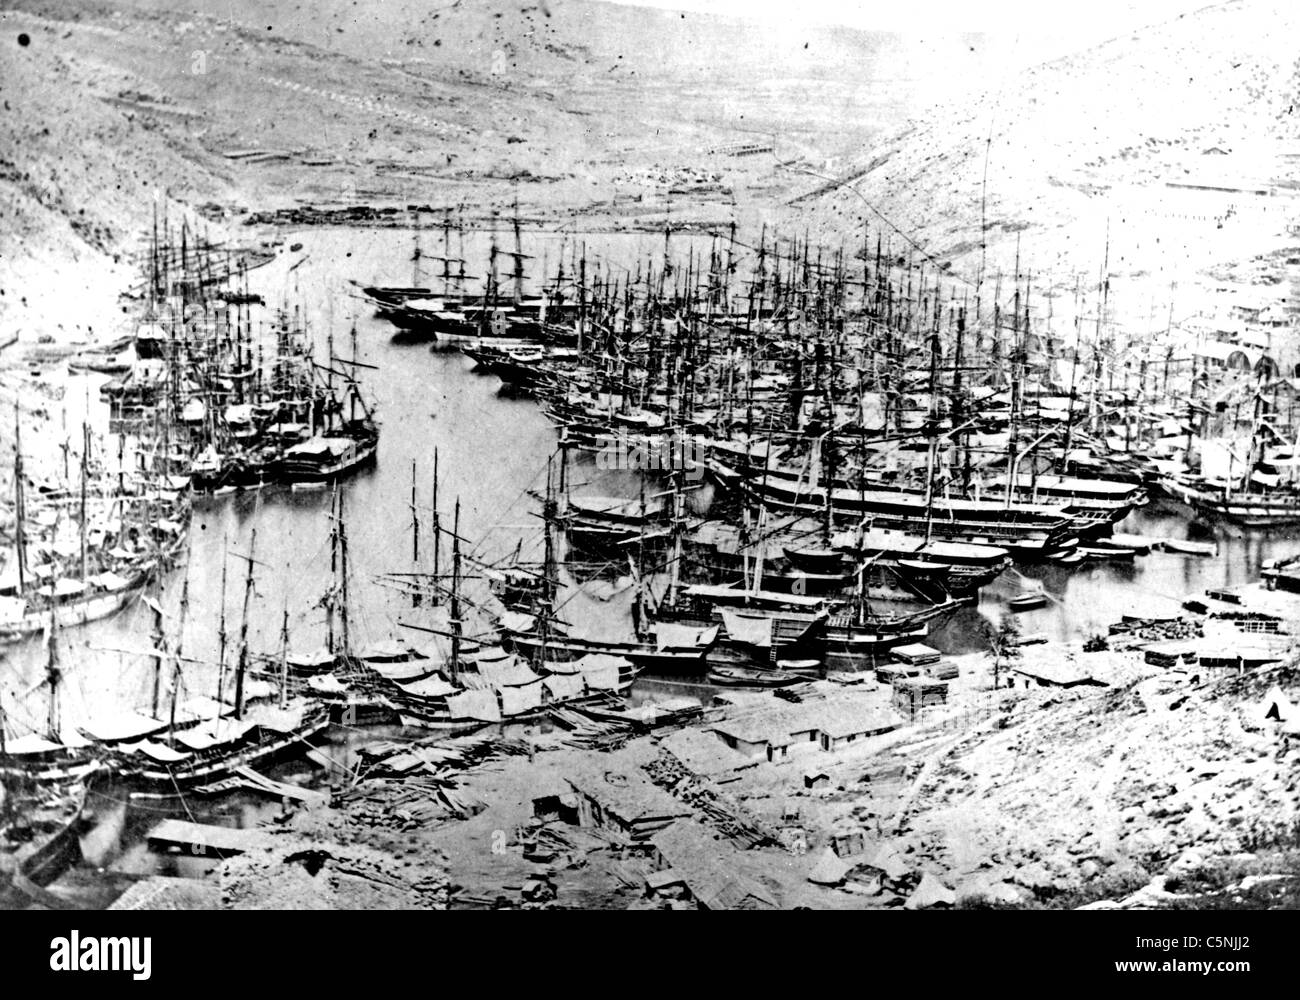 CRIMEAN WAR  Port of Balaclava photographed by Roger Fenton in 1855 showing Allied shipping - Stock Image